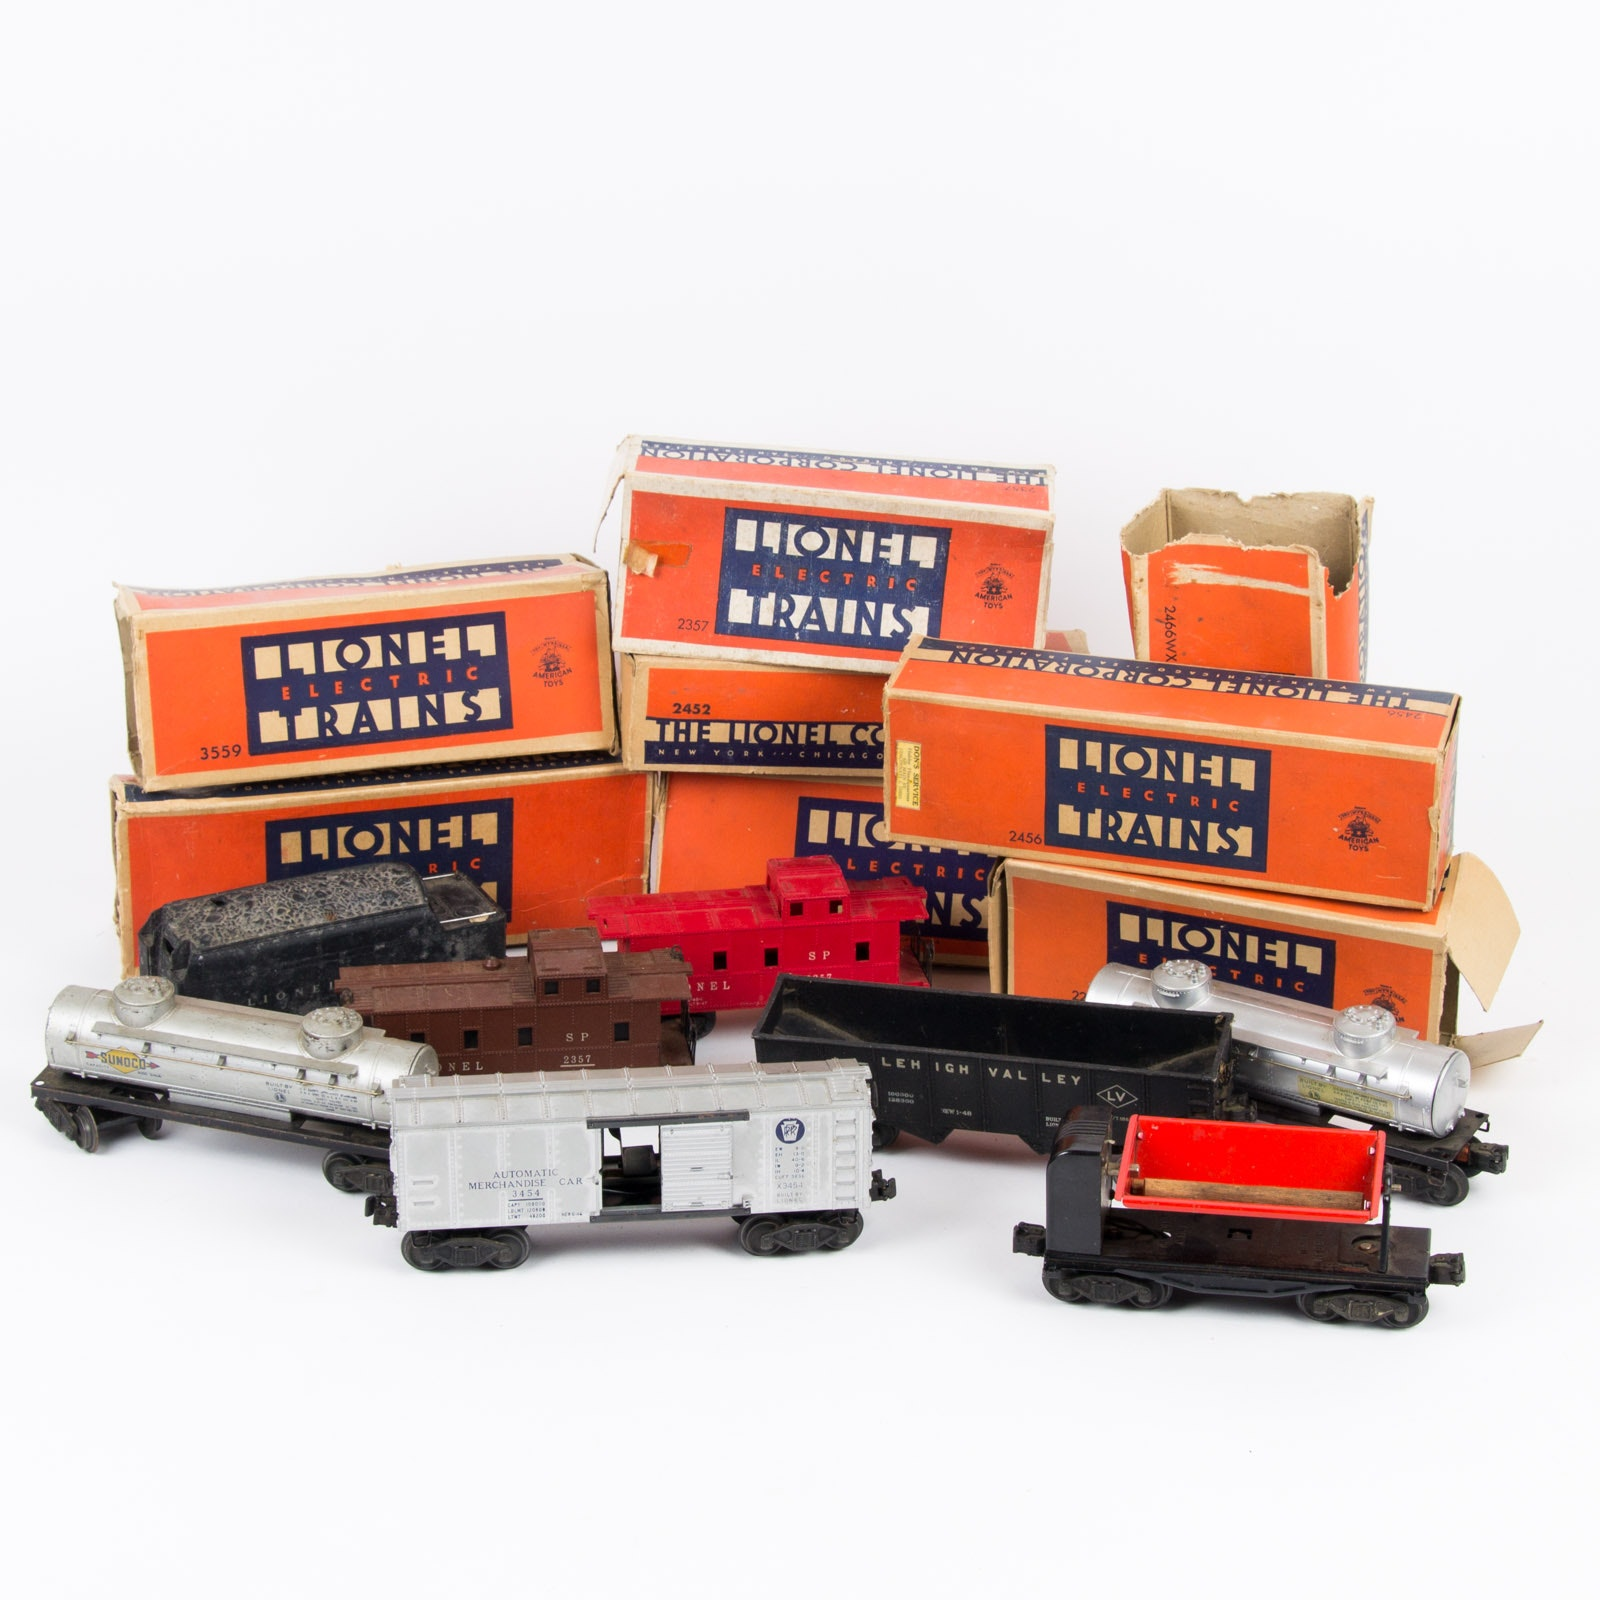 Vintage Lionel Train Assortment with Original Boxes